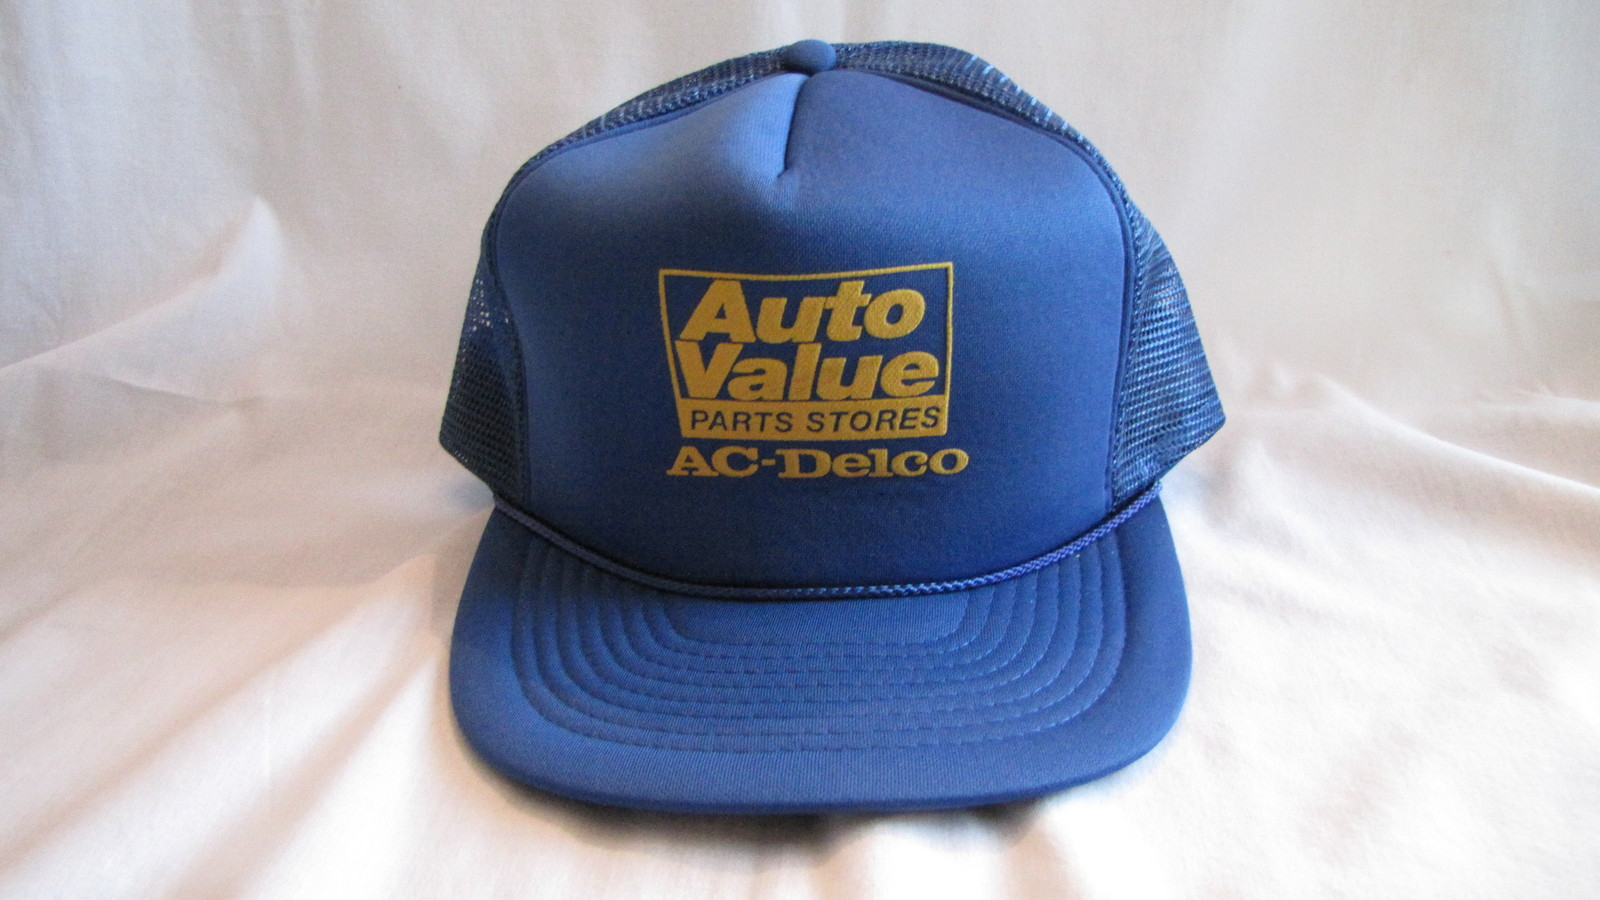 Auto Value Parts Stores AC-Delco Blue Baseball Trucker Hat Snap Back VINTAGE